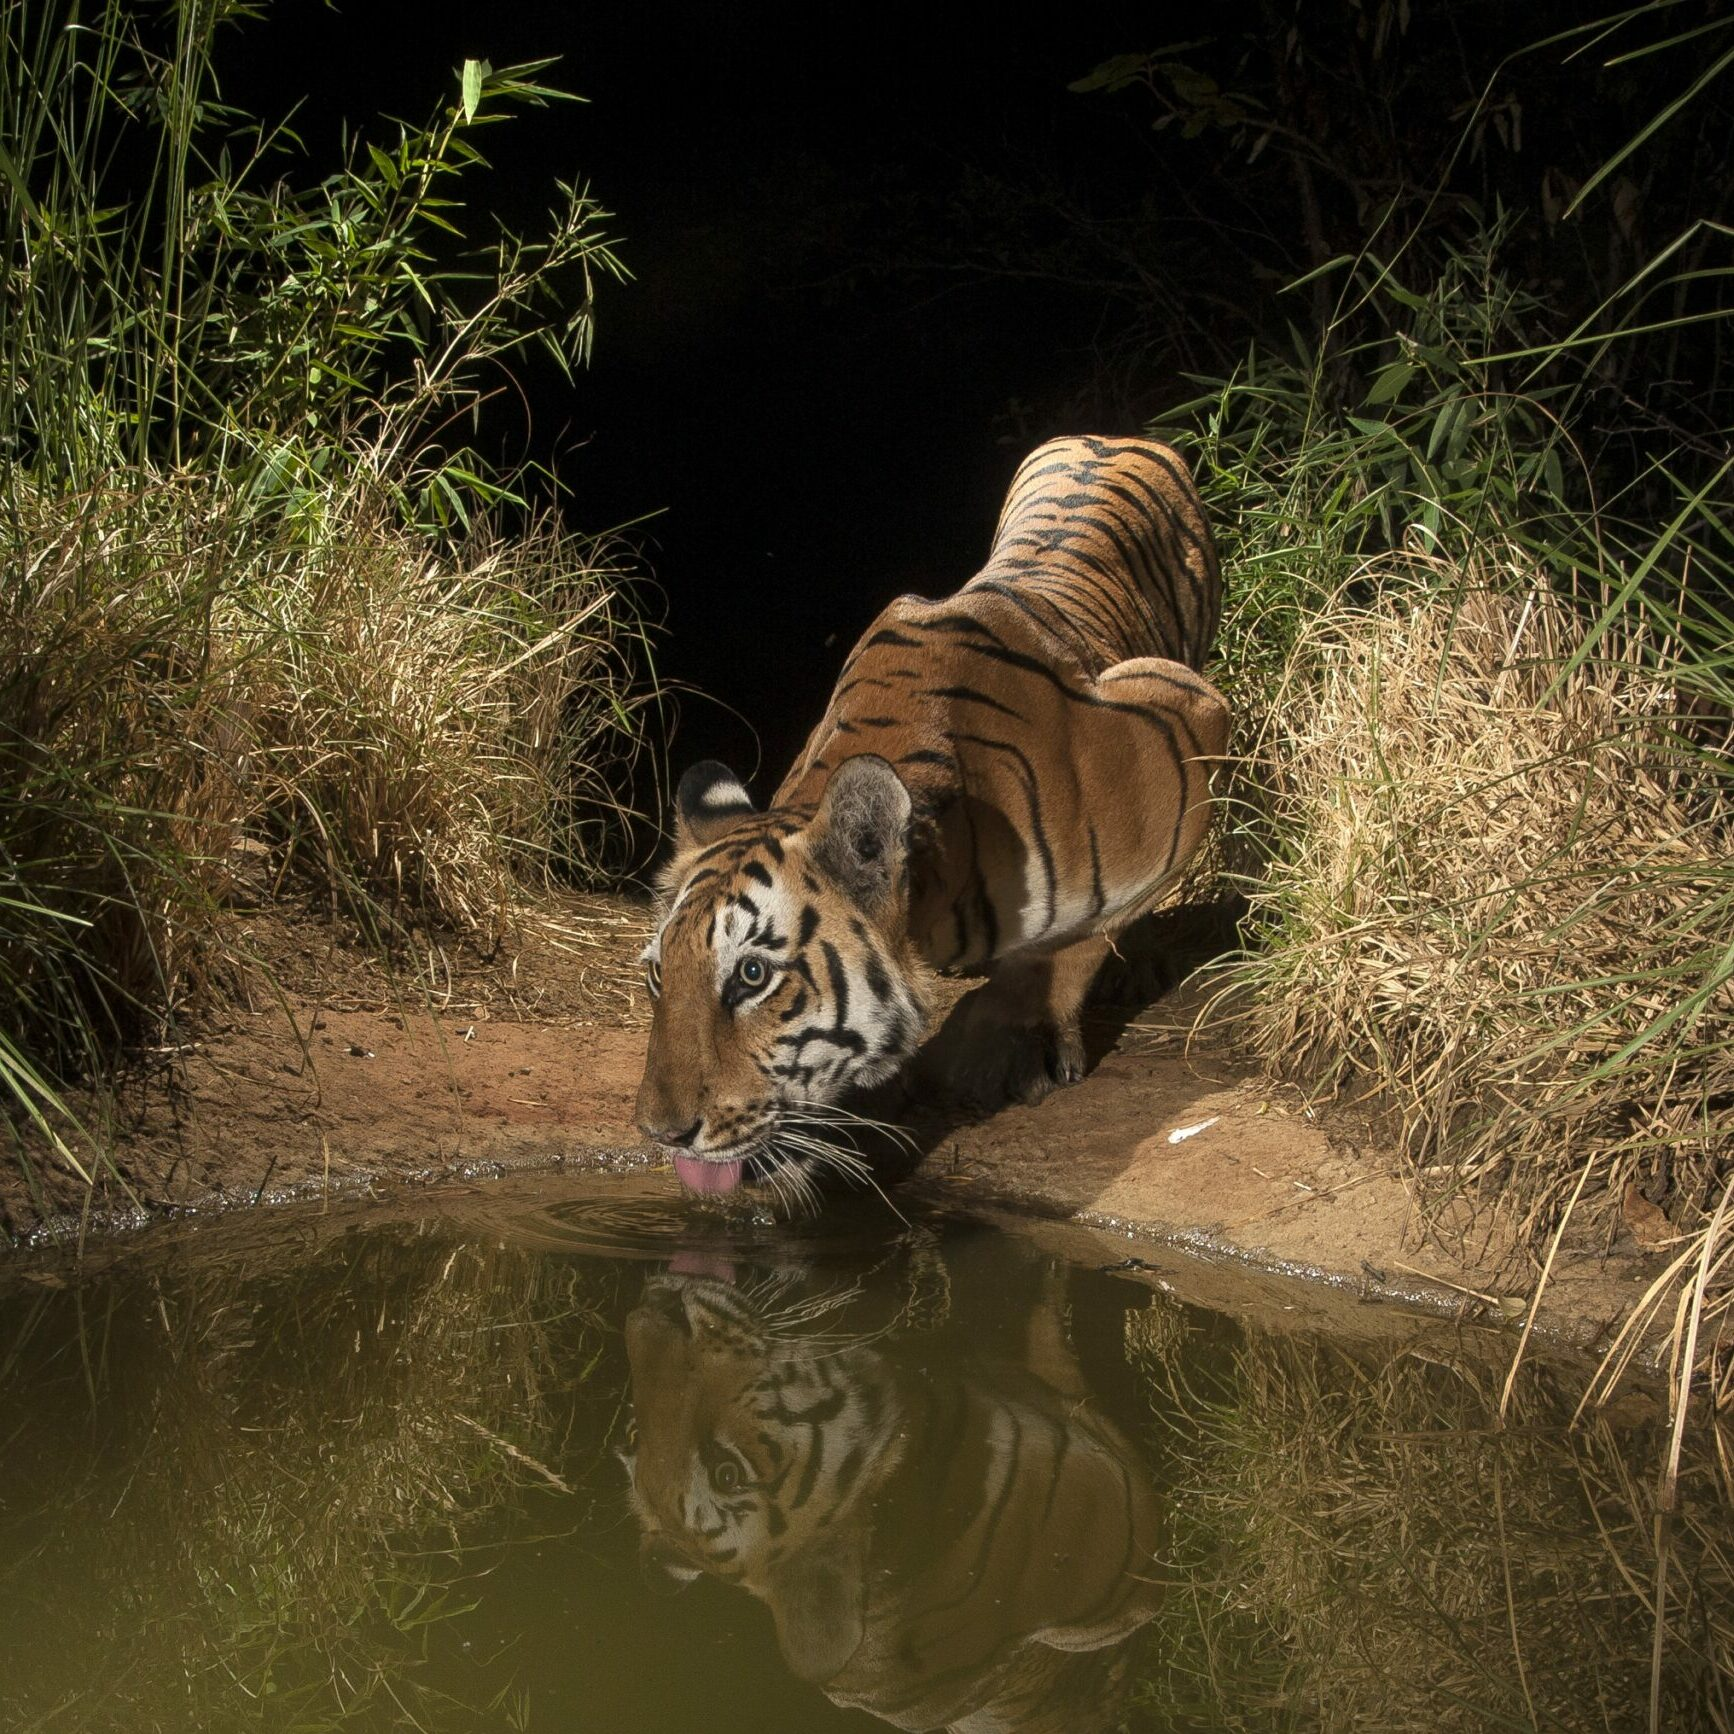 Tiger in a watering hole